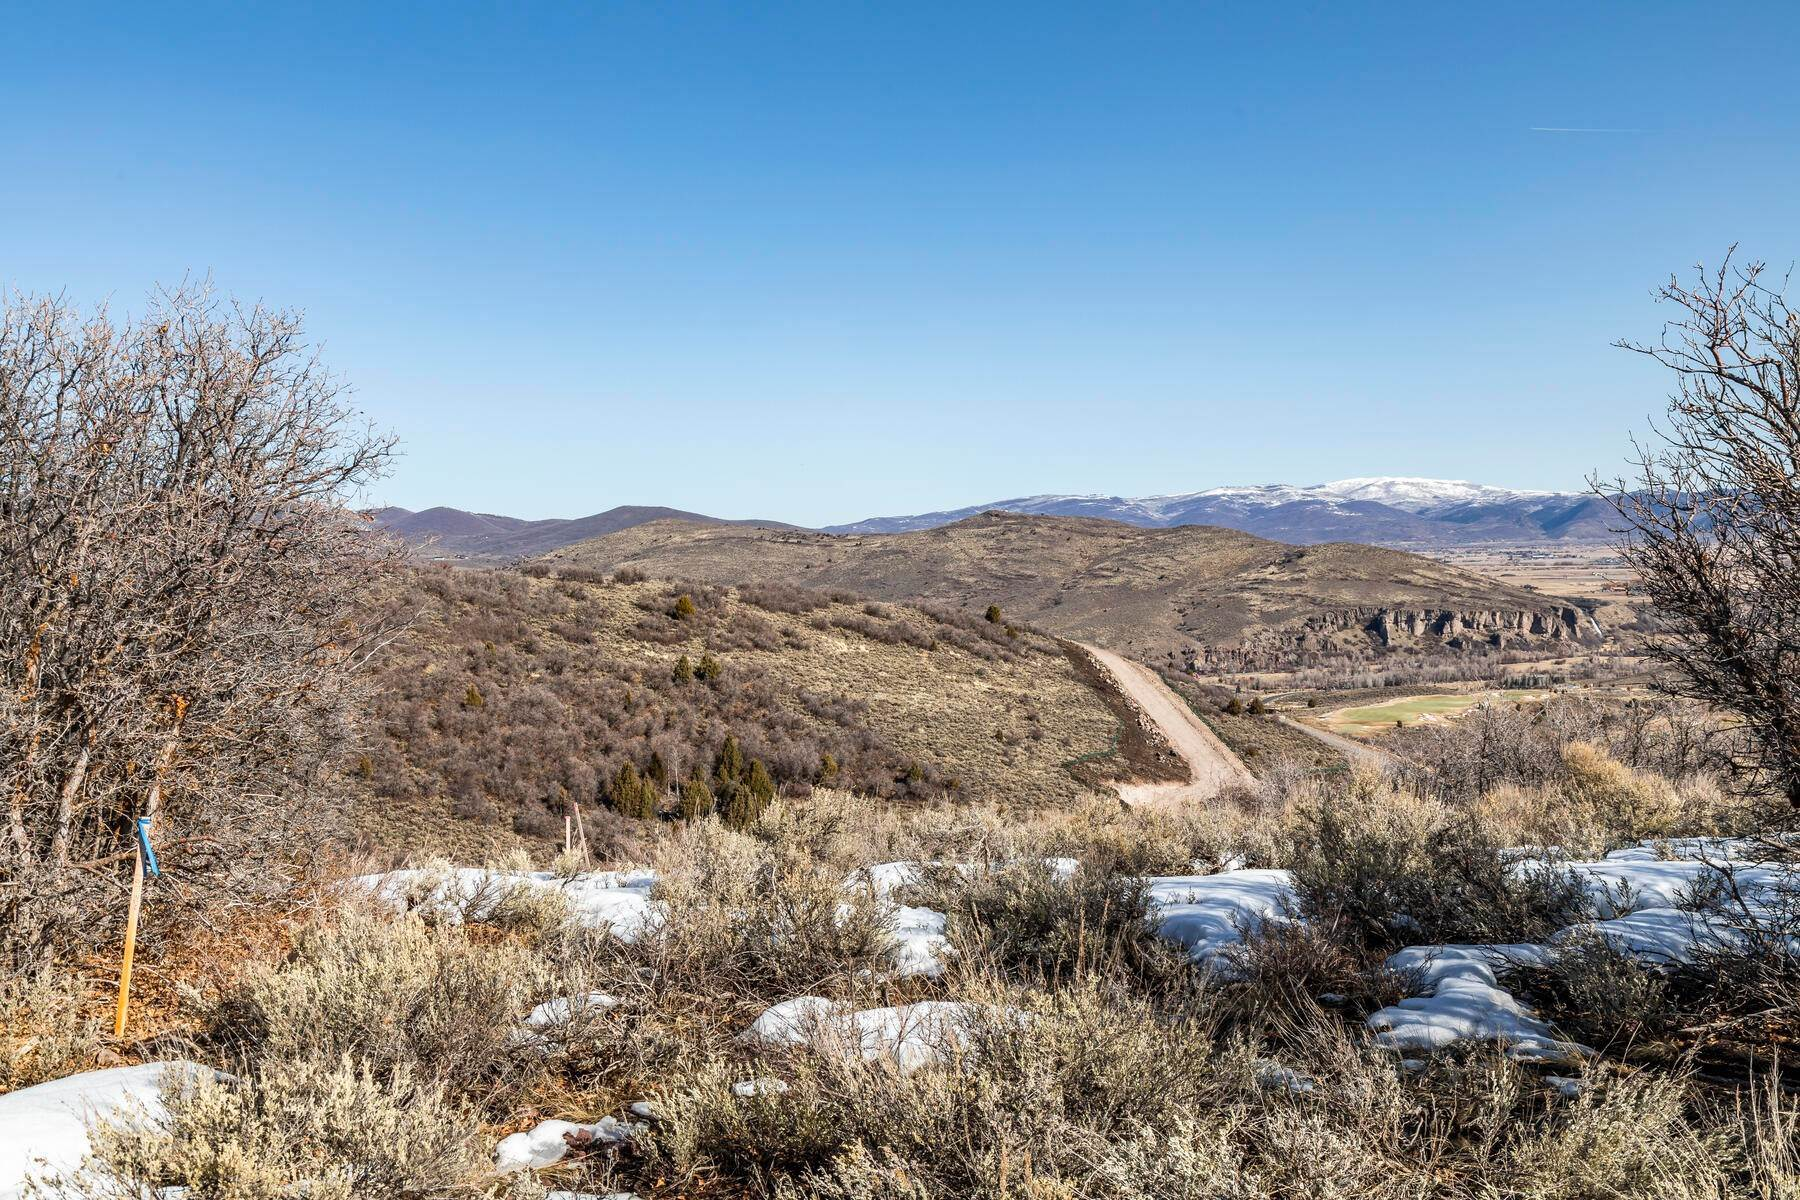 Property for Sale at This 4.45 Acre Homesite Features A Large Building Pad with Open Space 5961 E Backcountry Way, Lot #364 Heber City, Utah 84032 United States